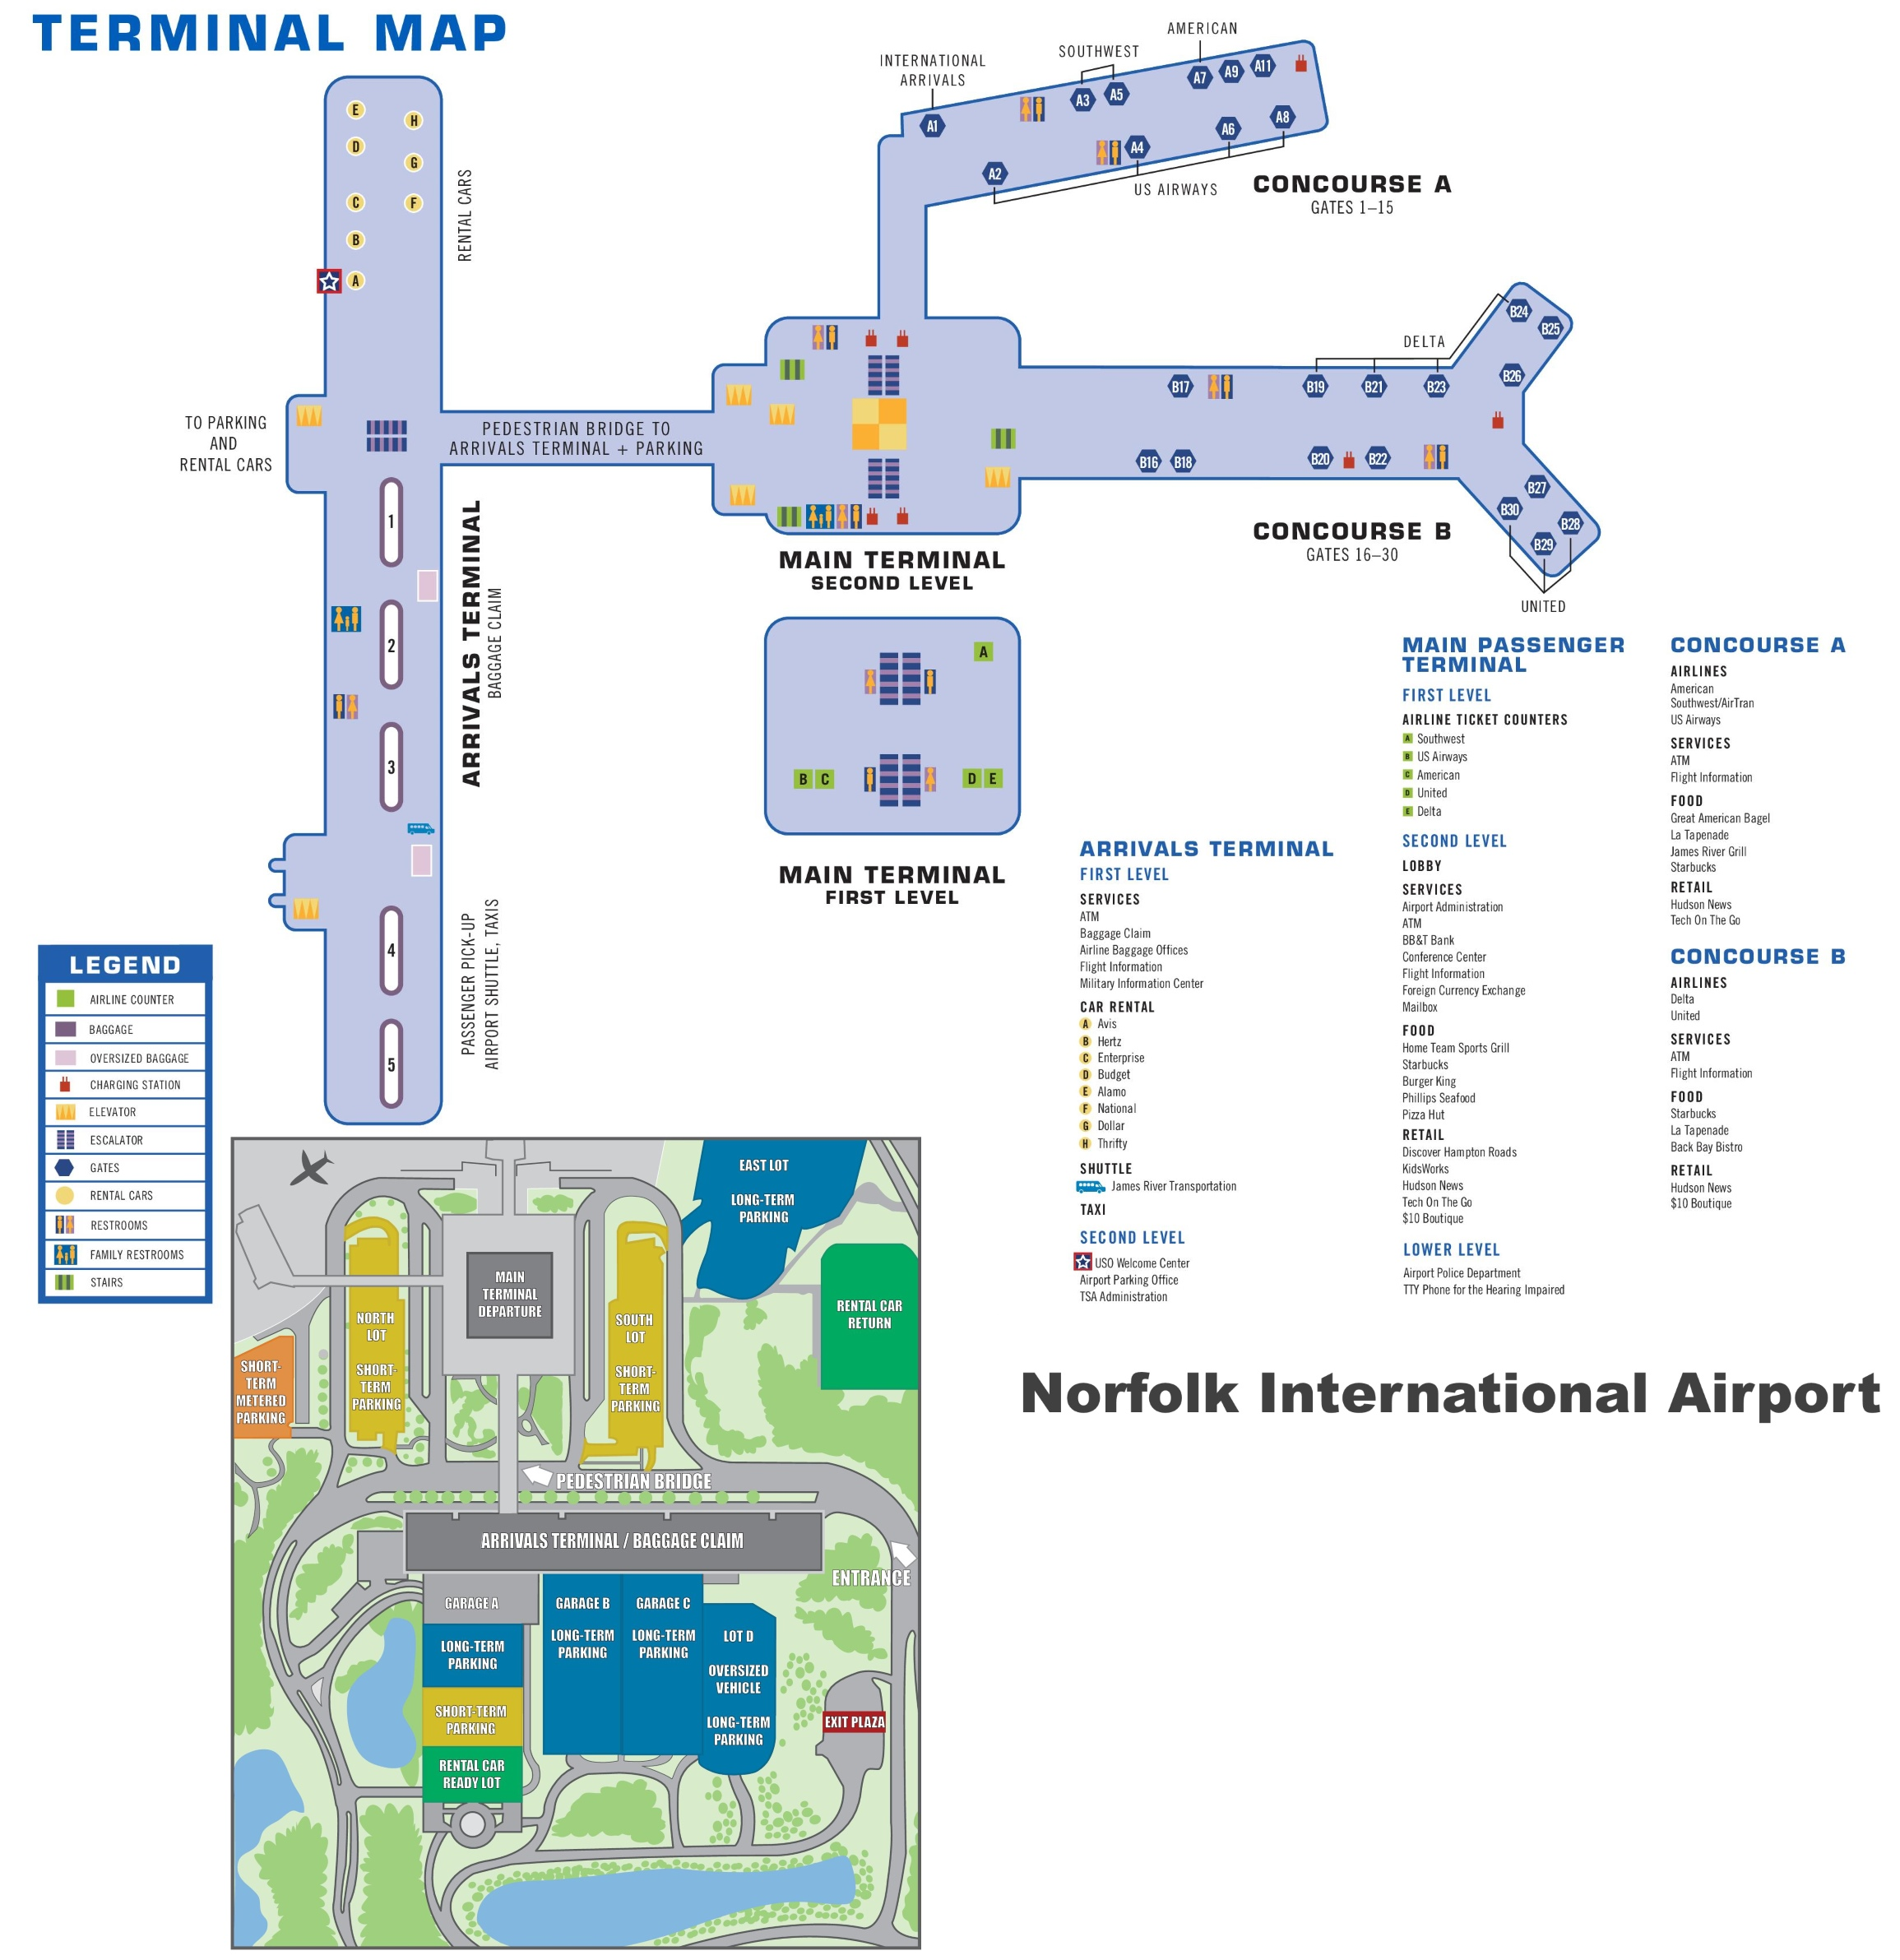 norfolk airport map norfolk va » Full HD MAPS Locations - Another ...